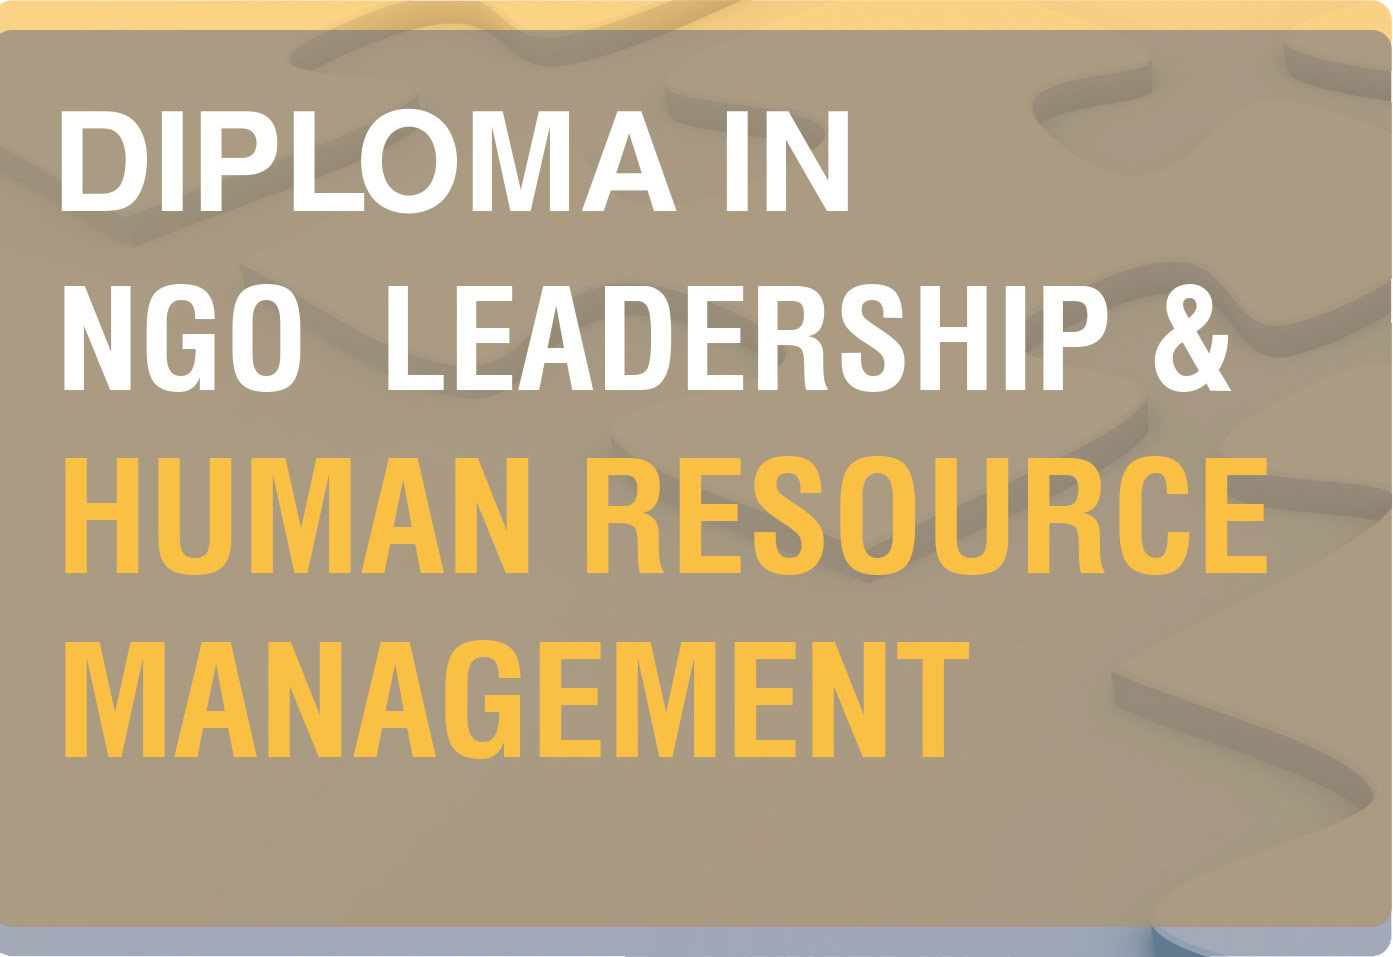 Diploma in NGO Leadership and Human Resource Management